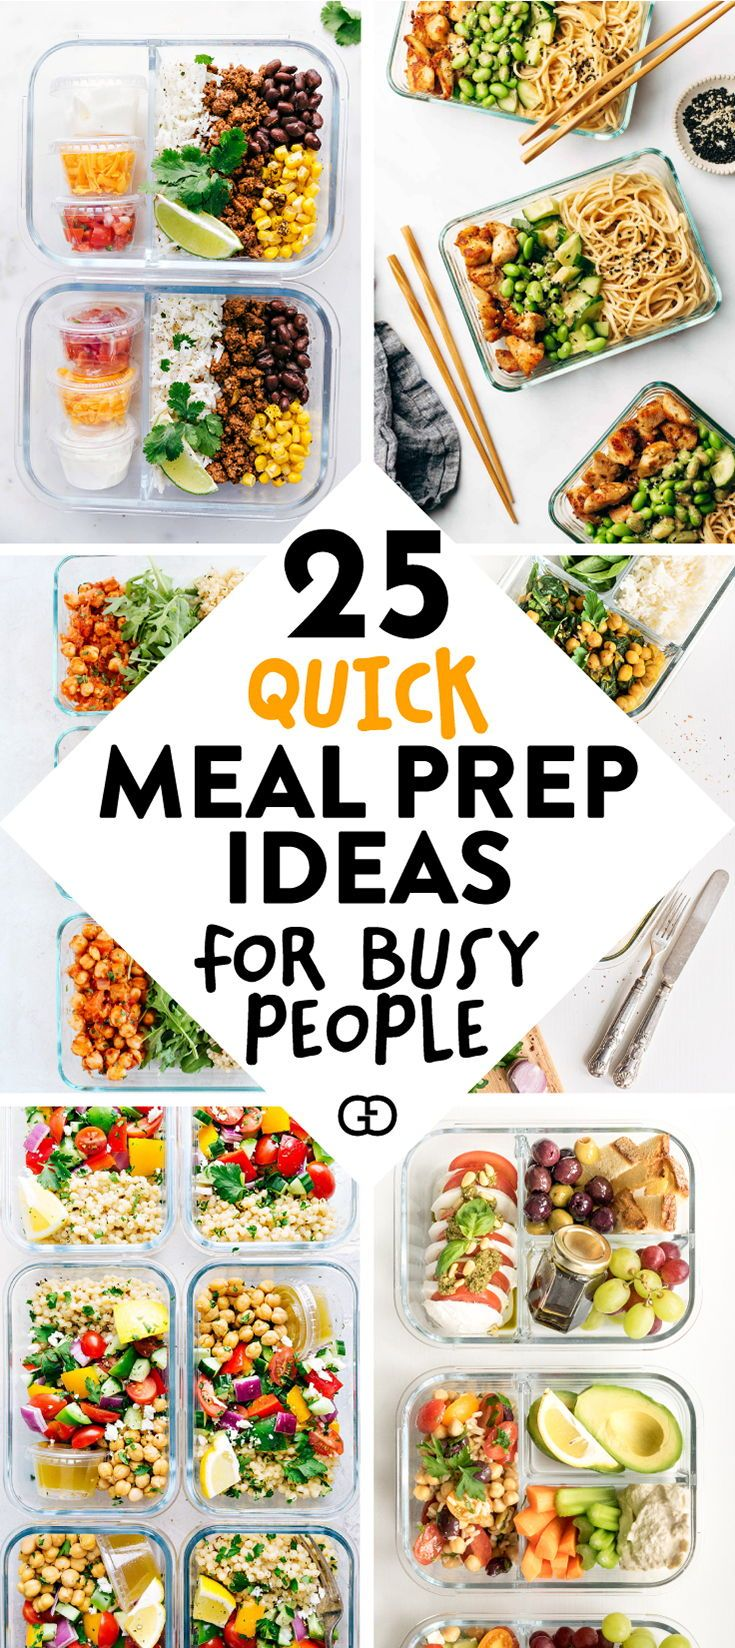 25 Healthy Meal Prep Ideas To Simplify Your Life -   18 meal prep recipes for the week lunches ideas